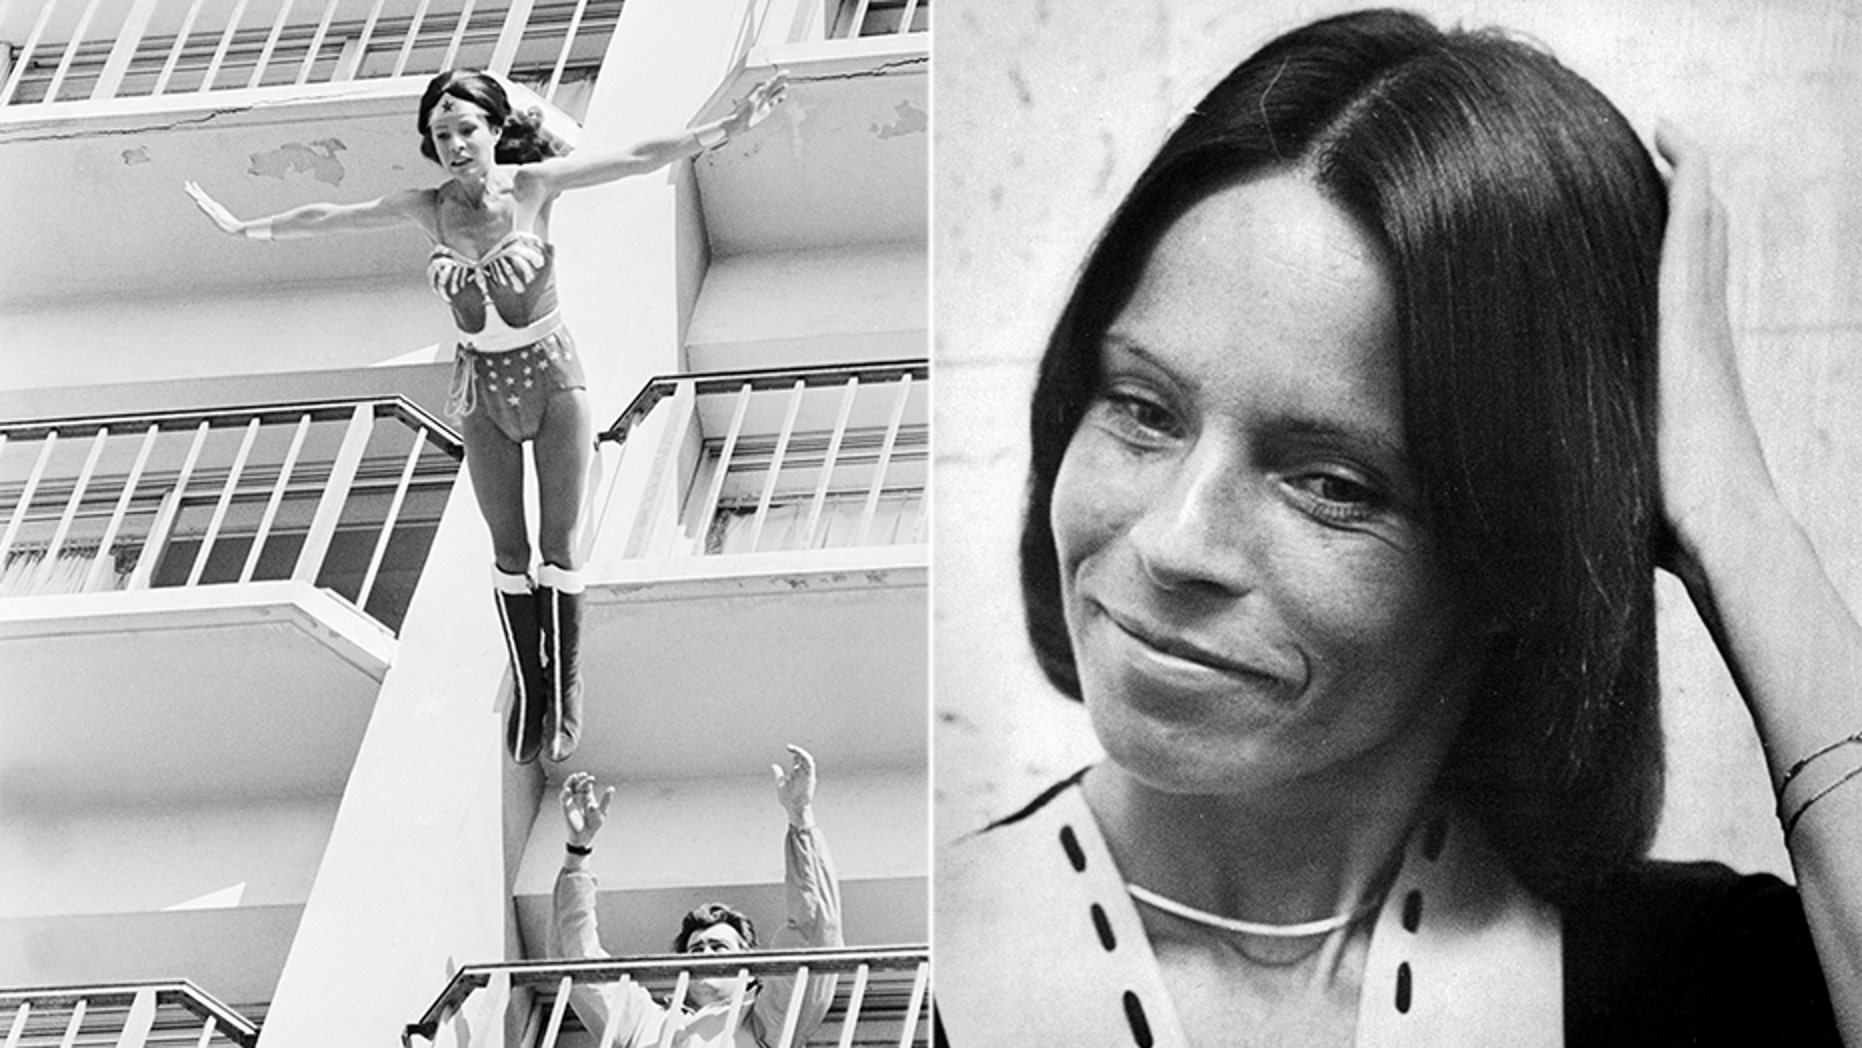 Legendary stuntwoman Kitty O'Neil died Friday at age 72.